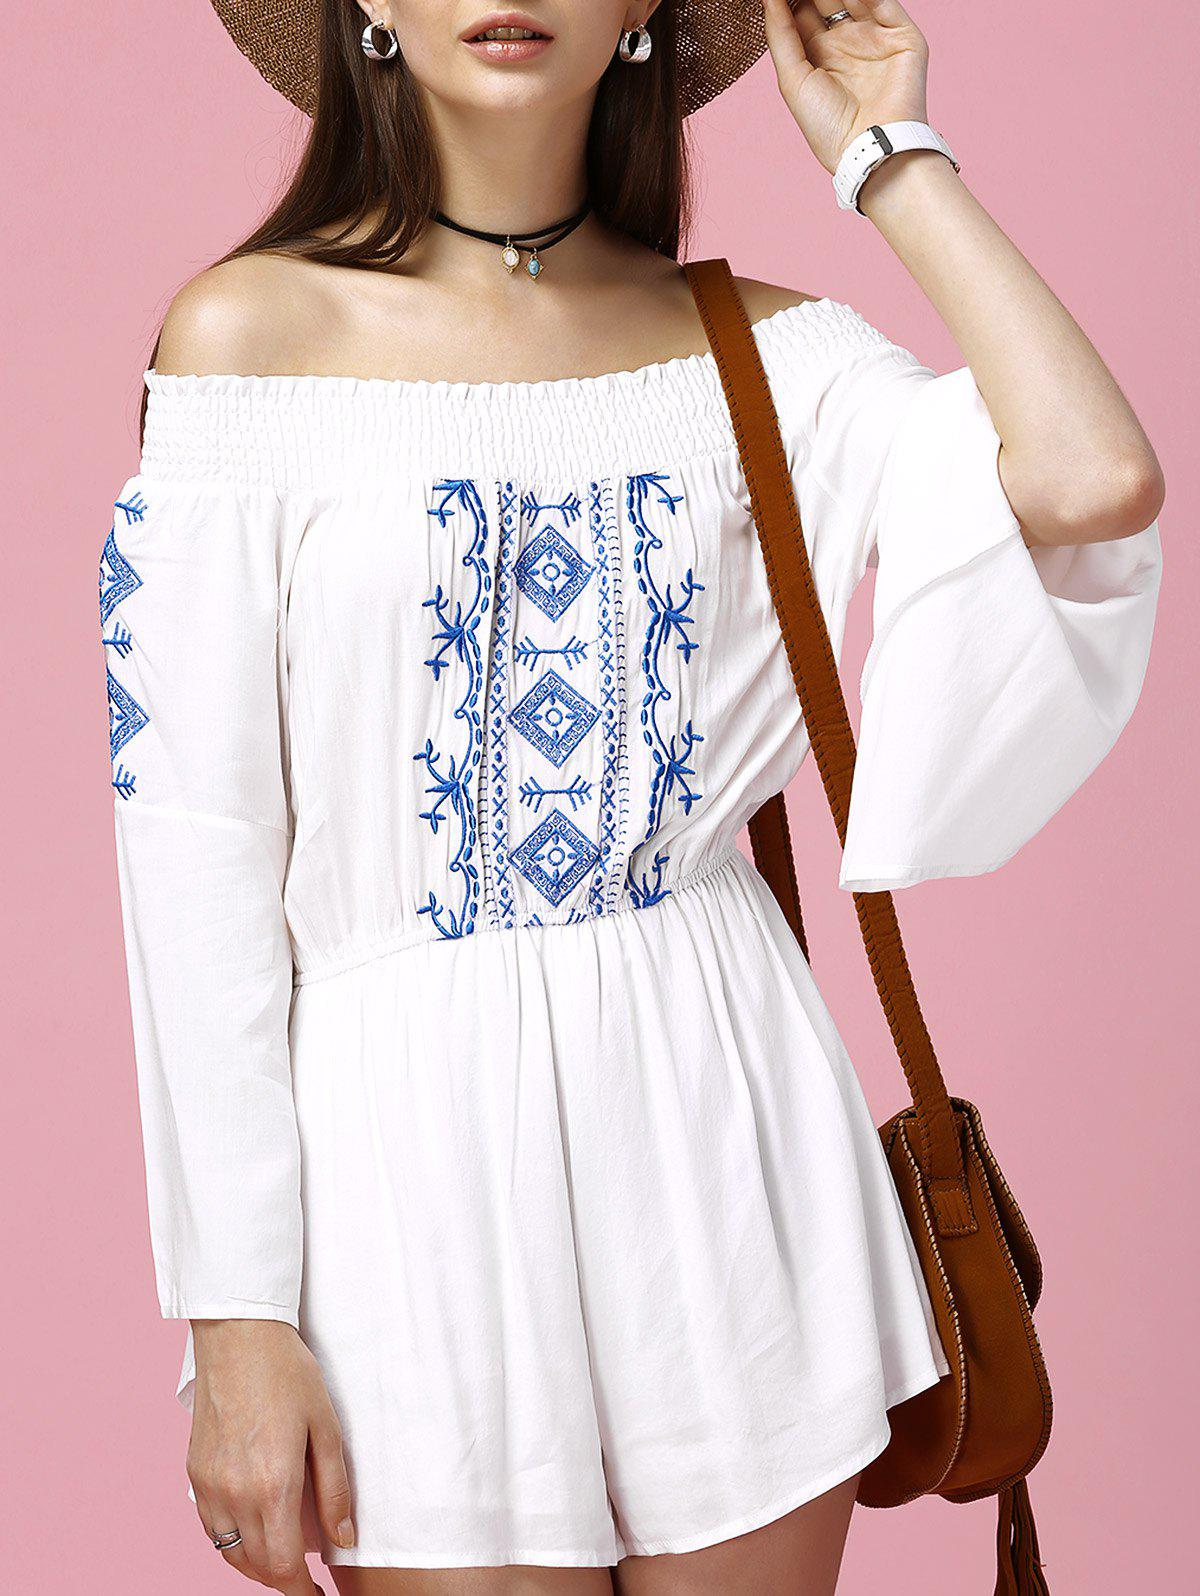 Ethnic Women's Off-The-Shoulder Flare Sleeves Embroidered Romper - 2XL WHITE